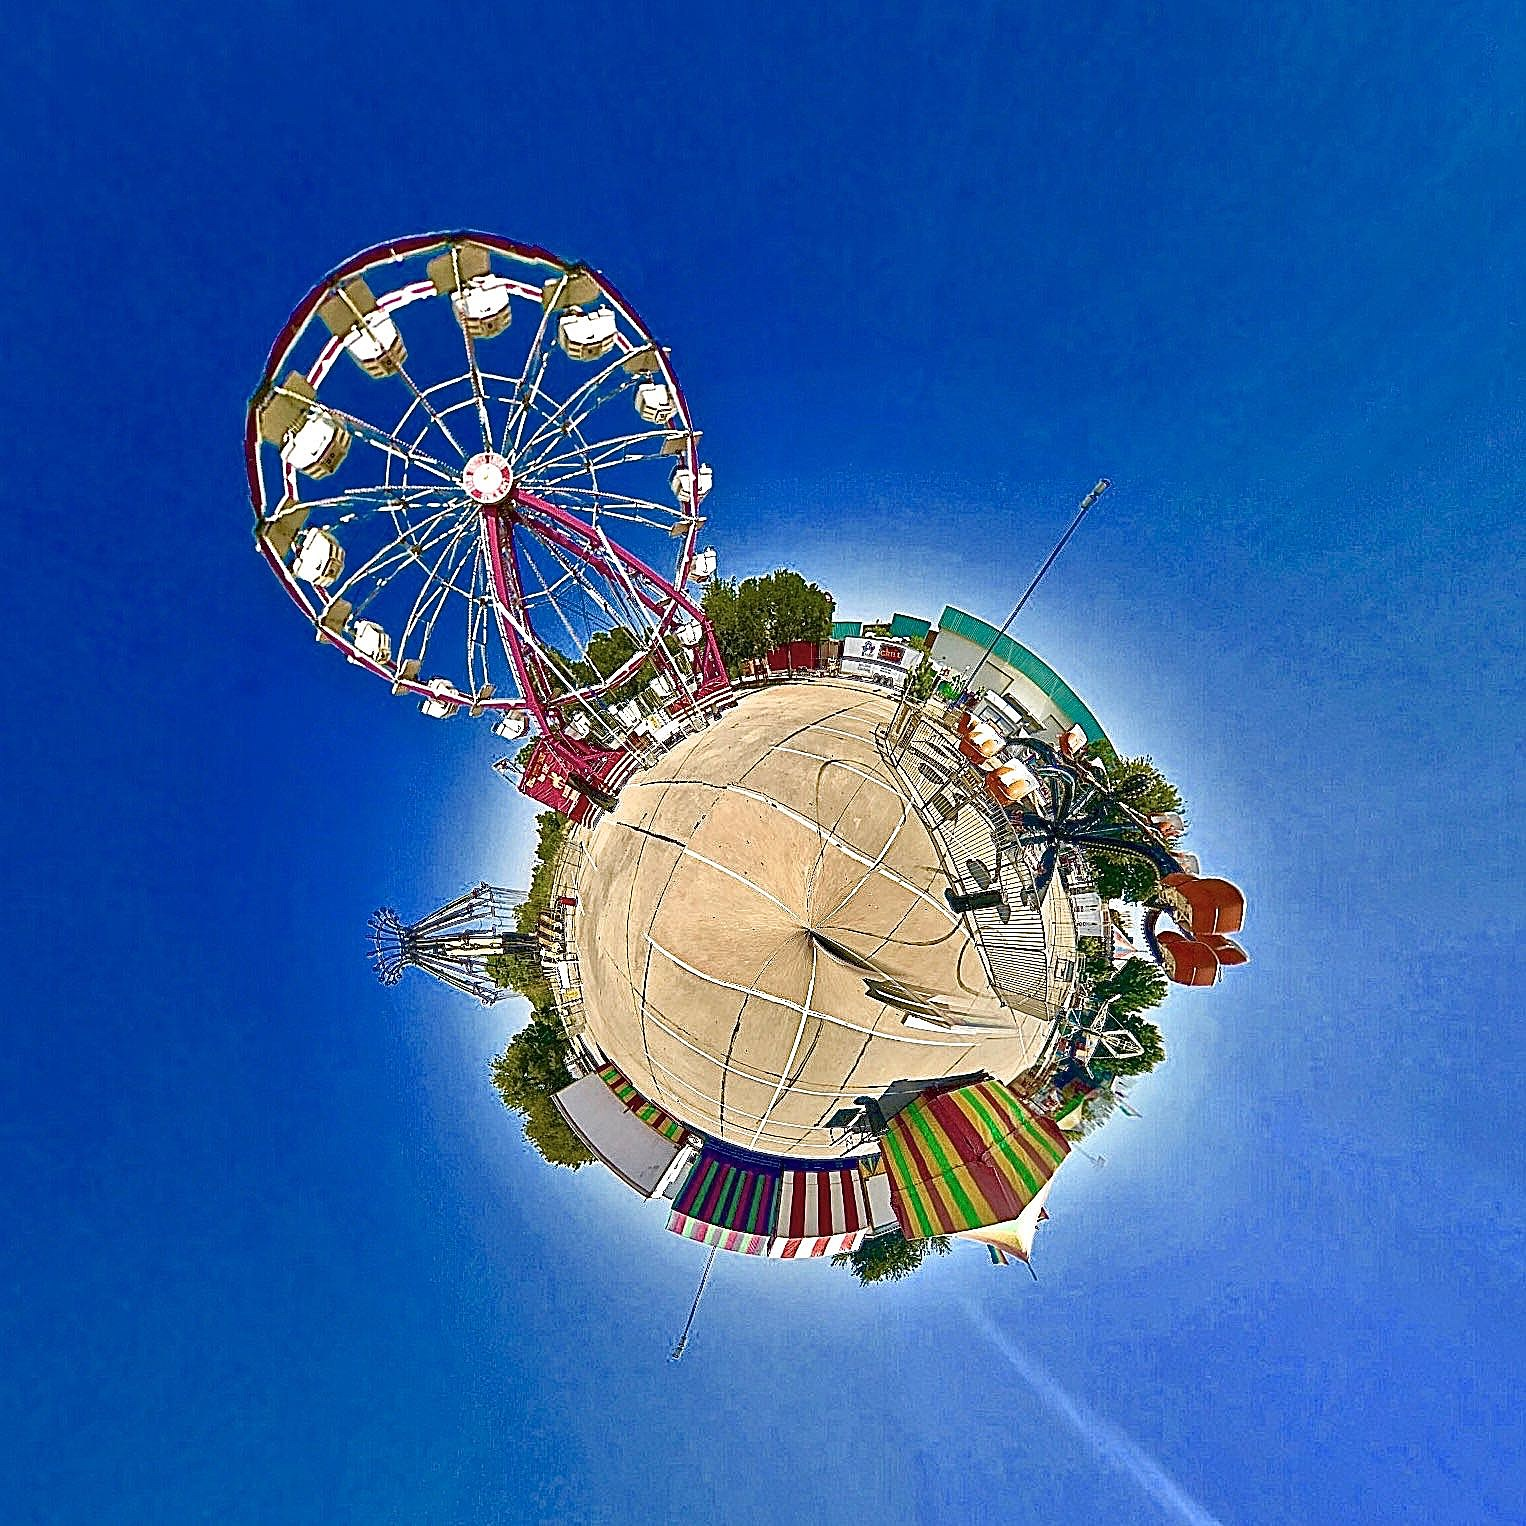 Texas-Oklahoma Fair - Tiny Planet